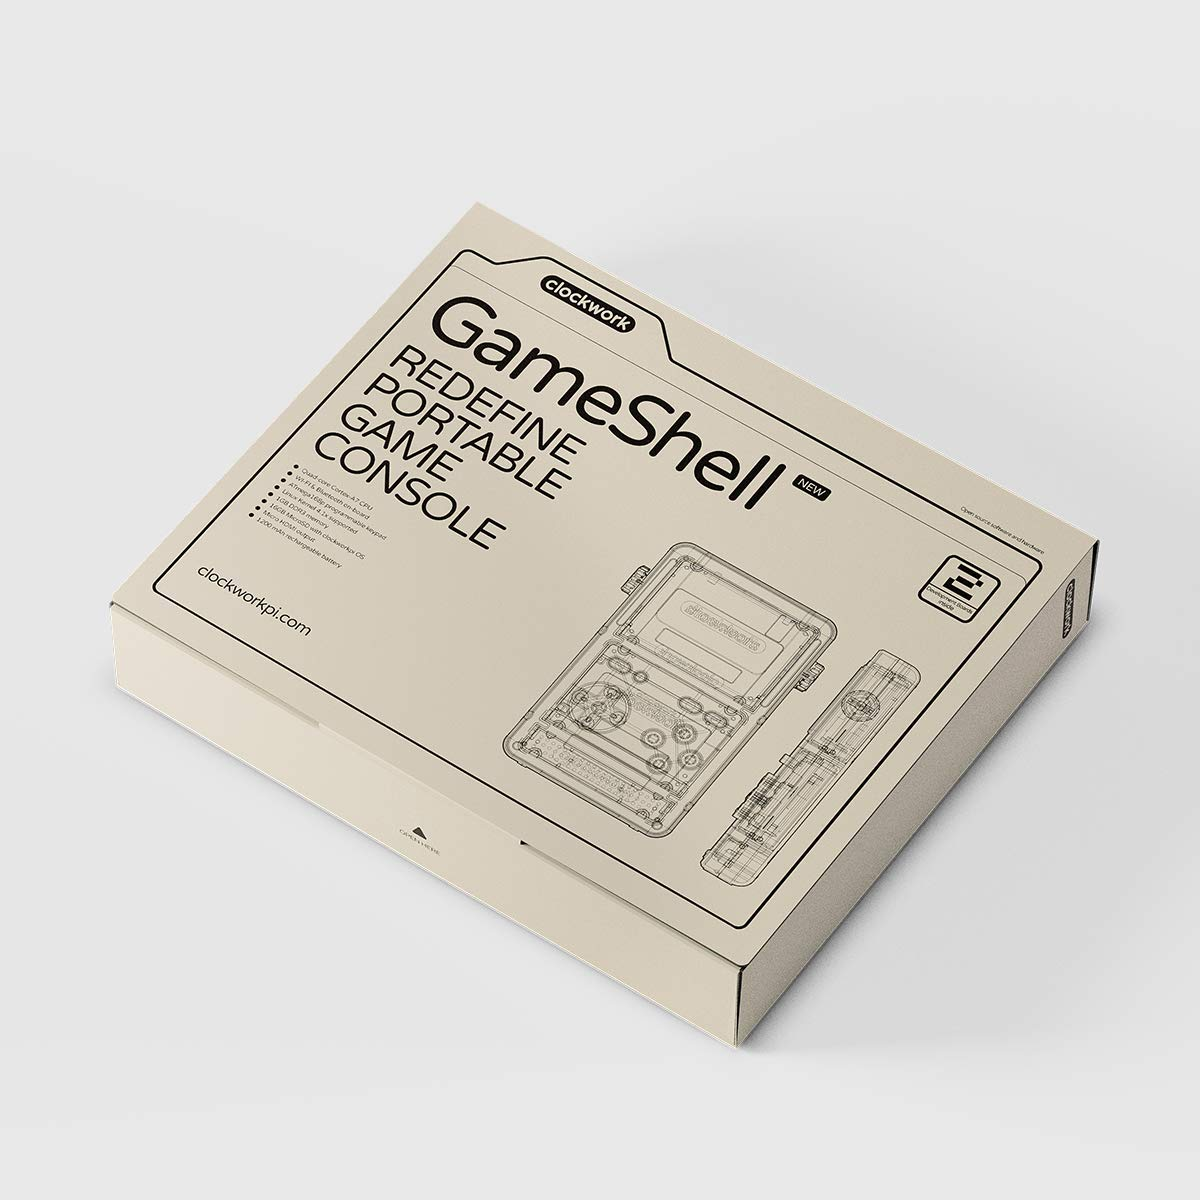 Clockwork GameShell Portable Game Console Box